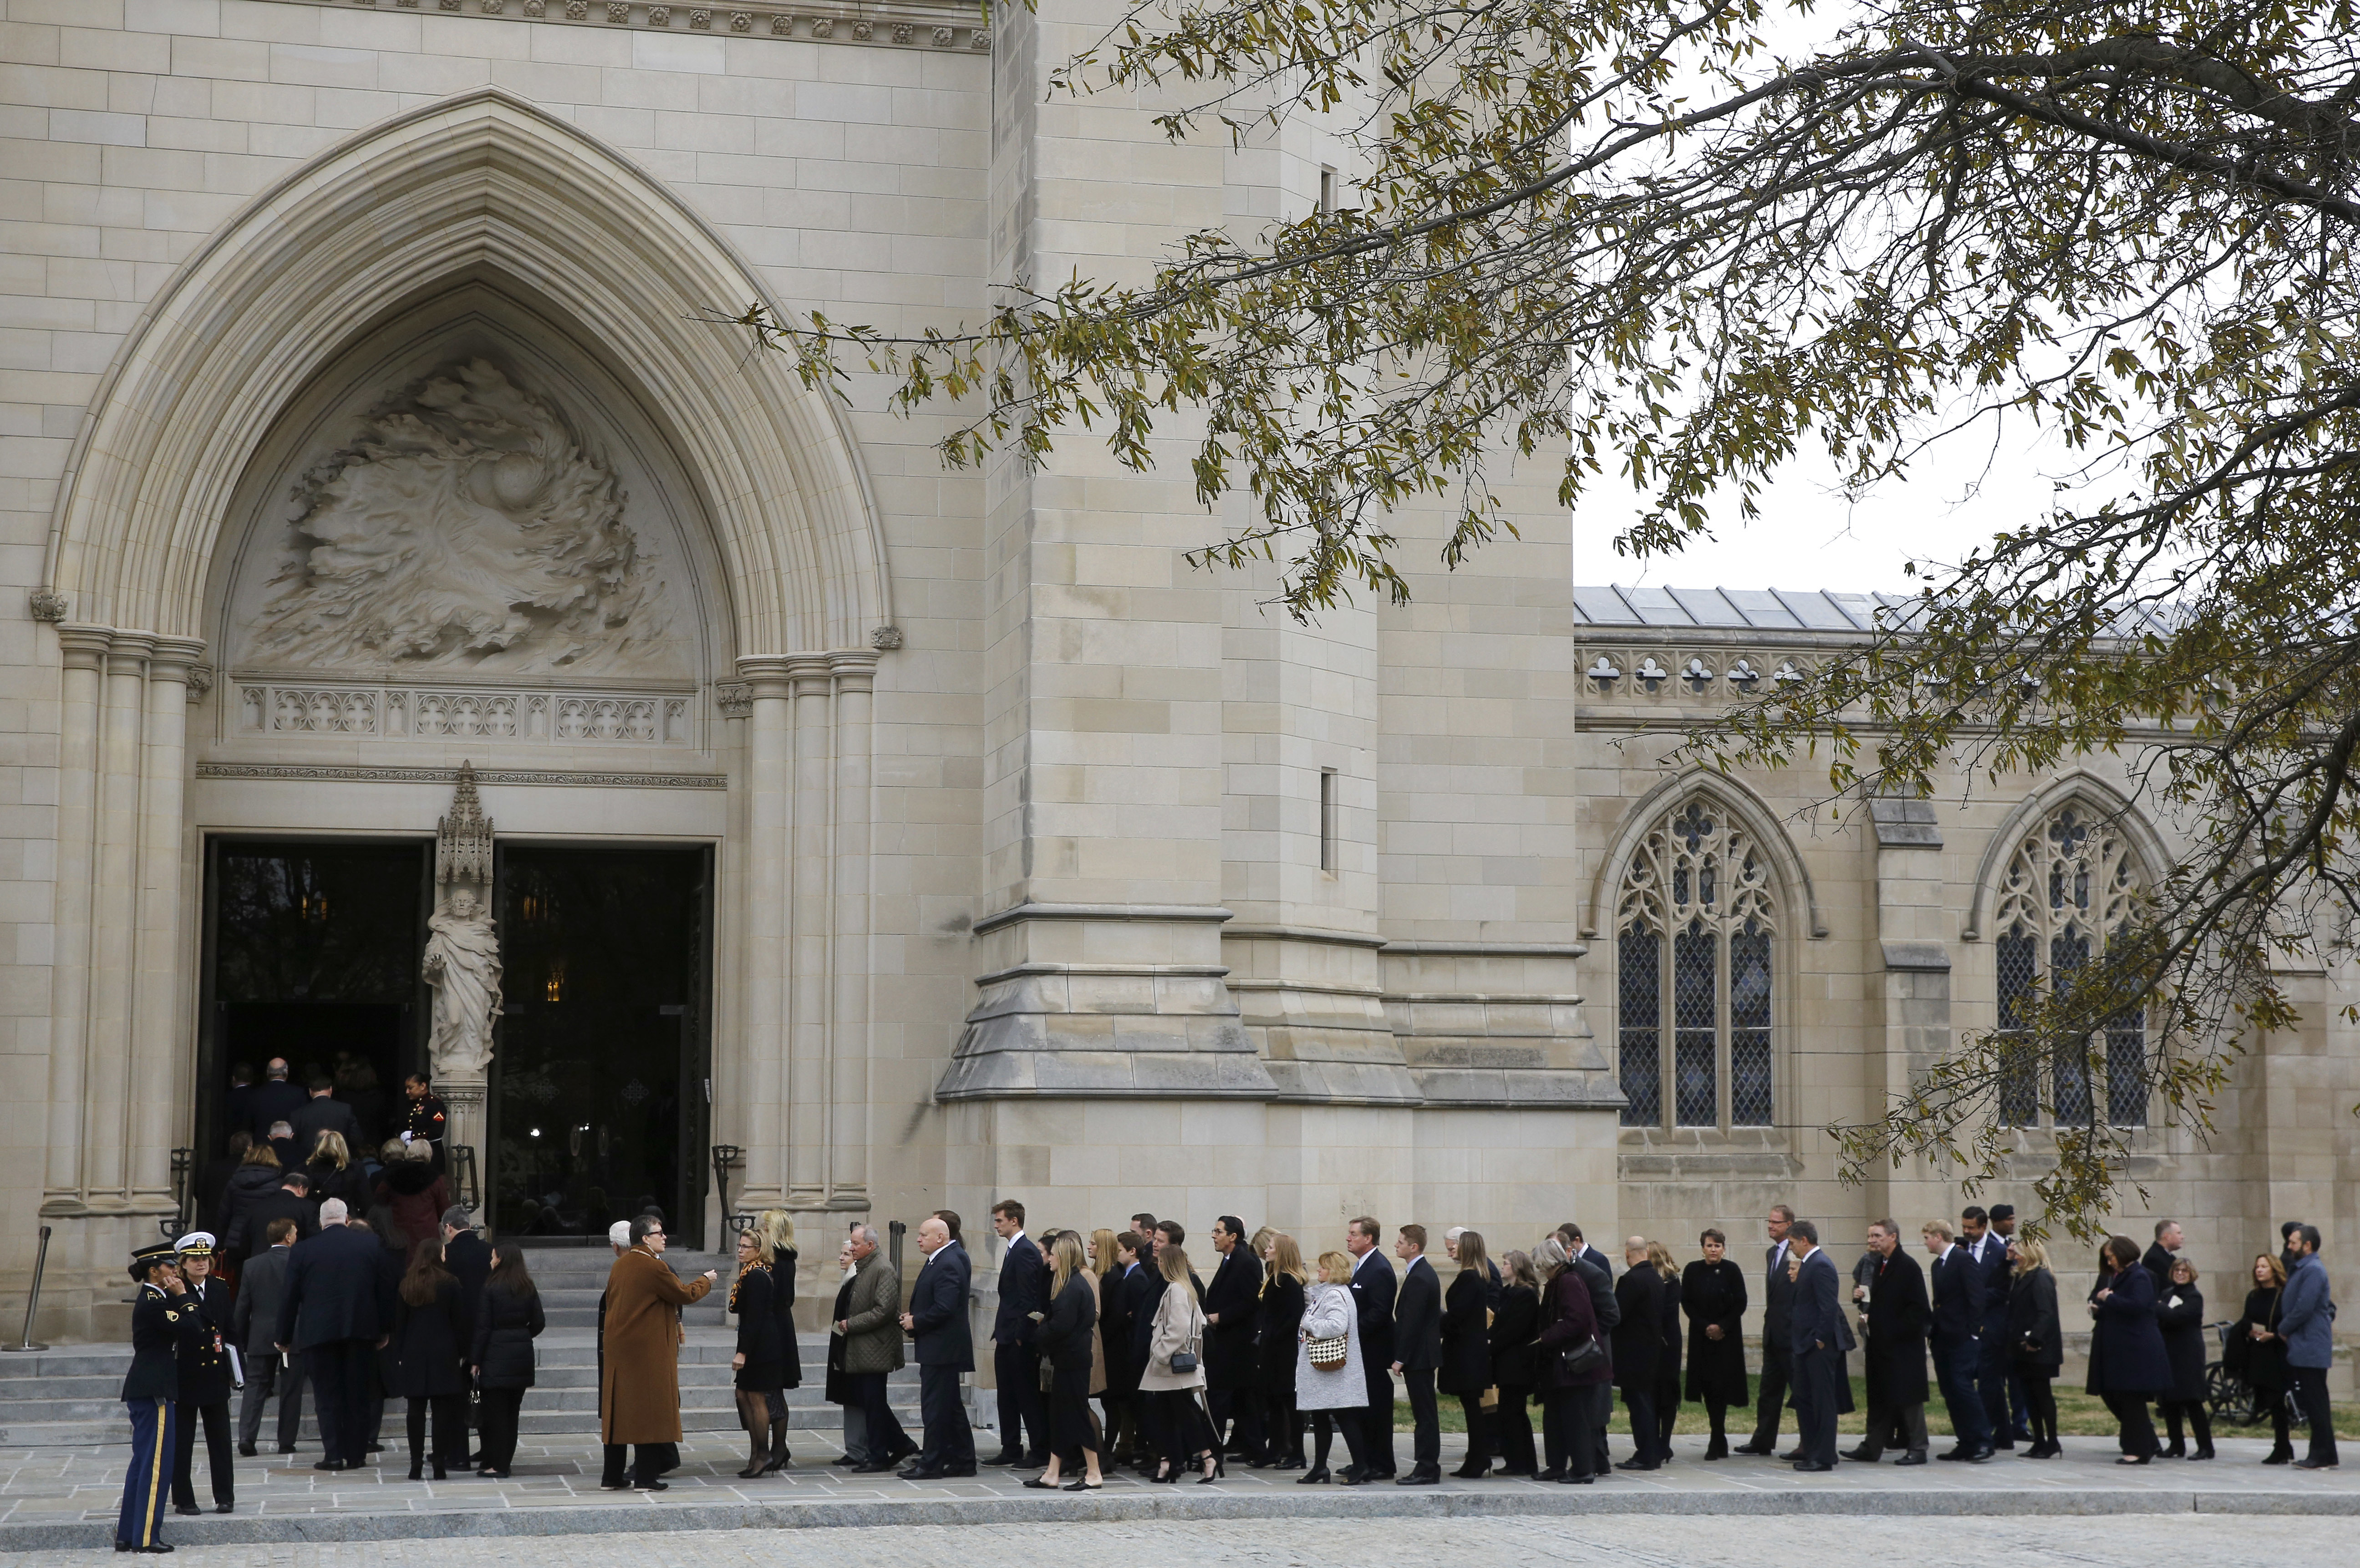 Mourners file into the Washington National Cathedral before the State Funeral for former President George H.W. Bush in Washington, Wednesday, Dec. 5, 2018. (AP Photo/Patrick Semansky)